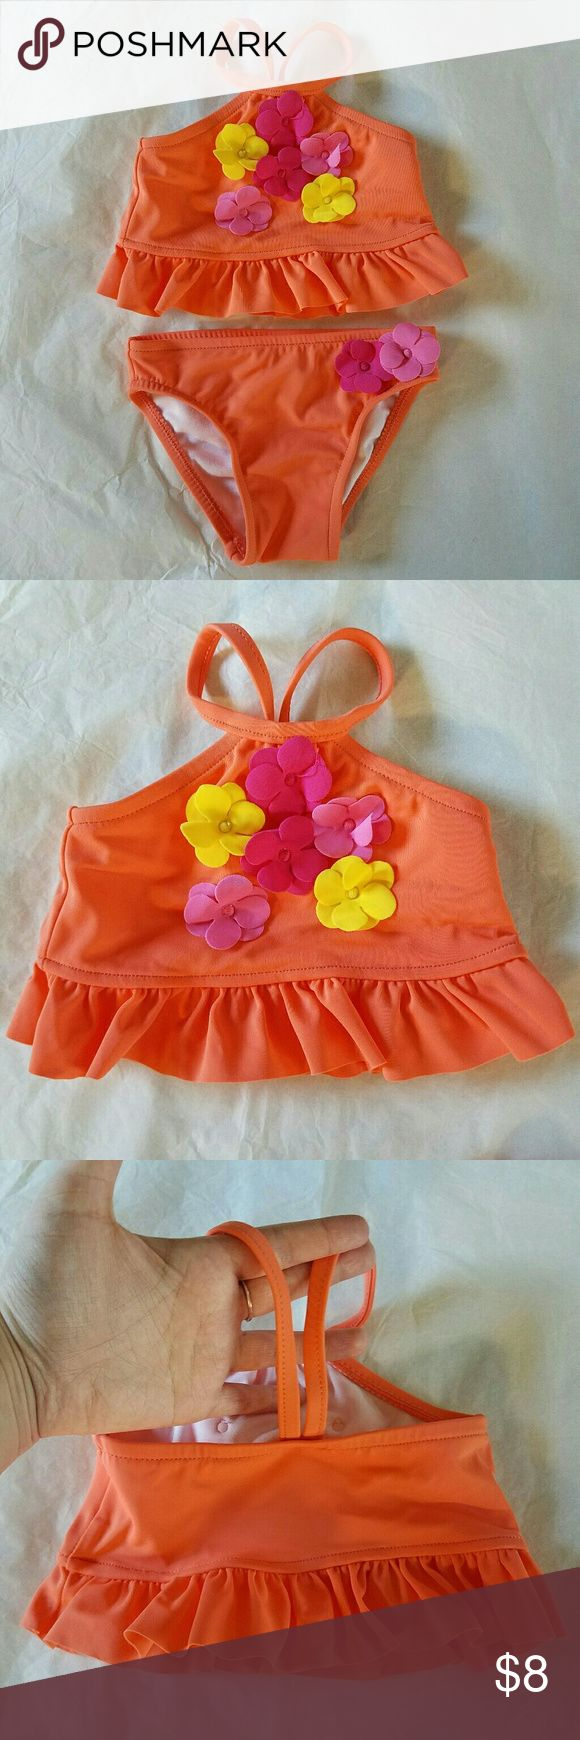 NWOT Baby Girl 2 Piece Bikini Swimsuit 0-3 Months Wave Zone orange two piece bikini bathing suit/swimsuit with flower appliques.  Washed once but never worn!  New without tags!  Size 0-3 Months (approximately 8 to 12 lbs).  Cheaper if bundled. Wave Zone Swim Bikinis